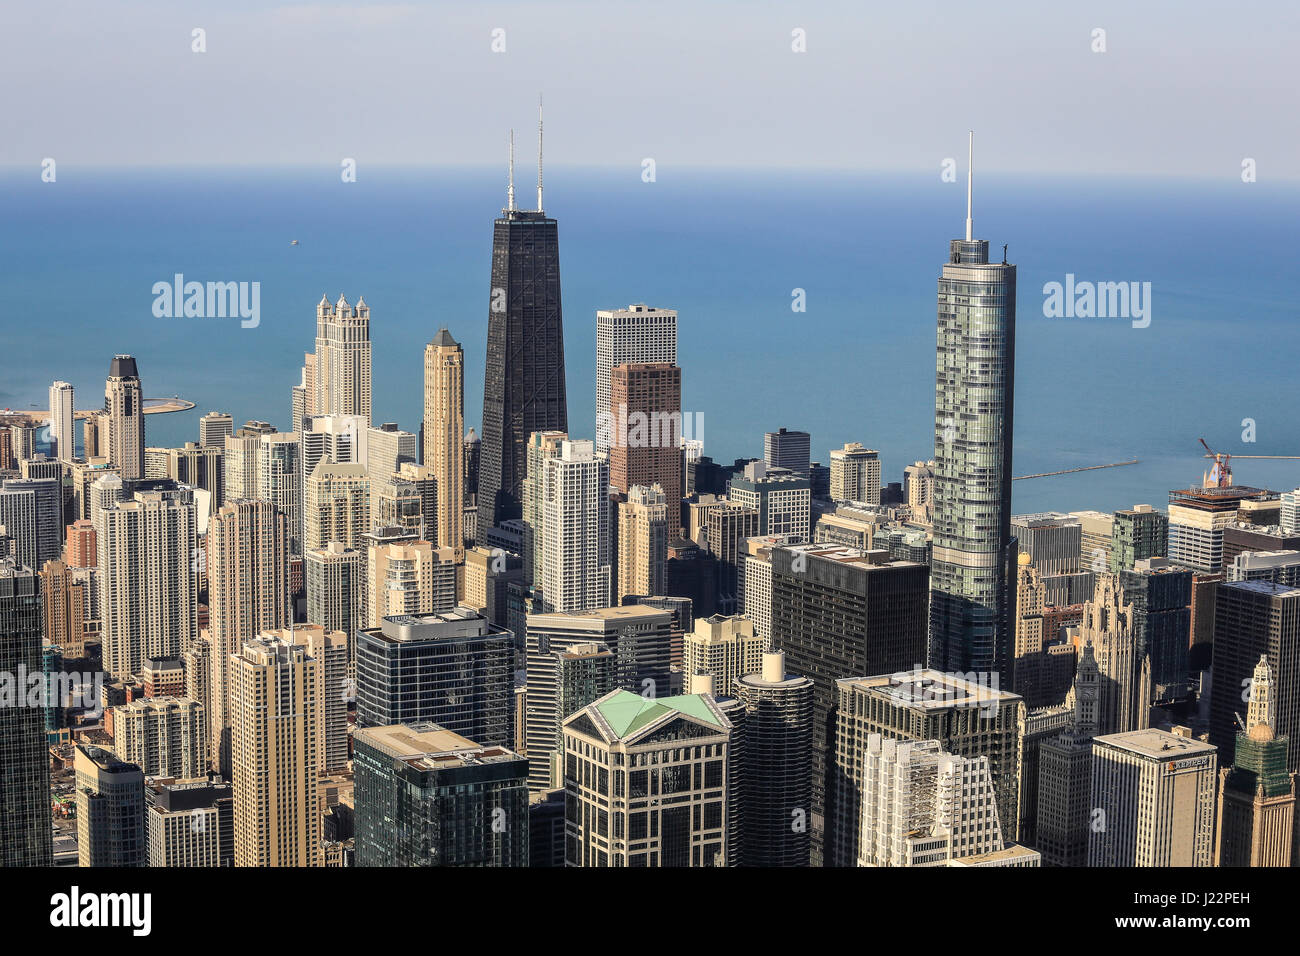 Images Of Willis Tower Skydeck Chicago Stock Photos And Skydeck Chicago Stock